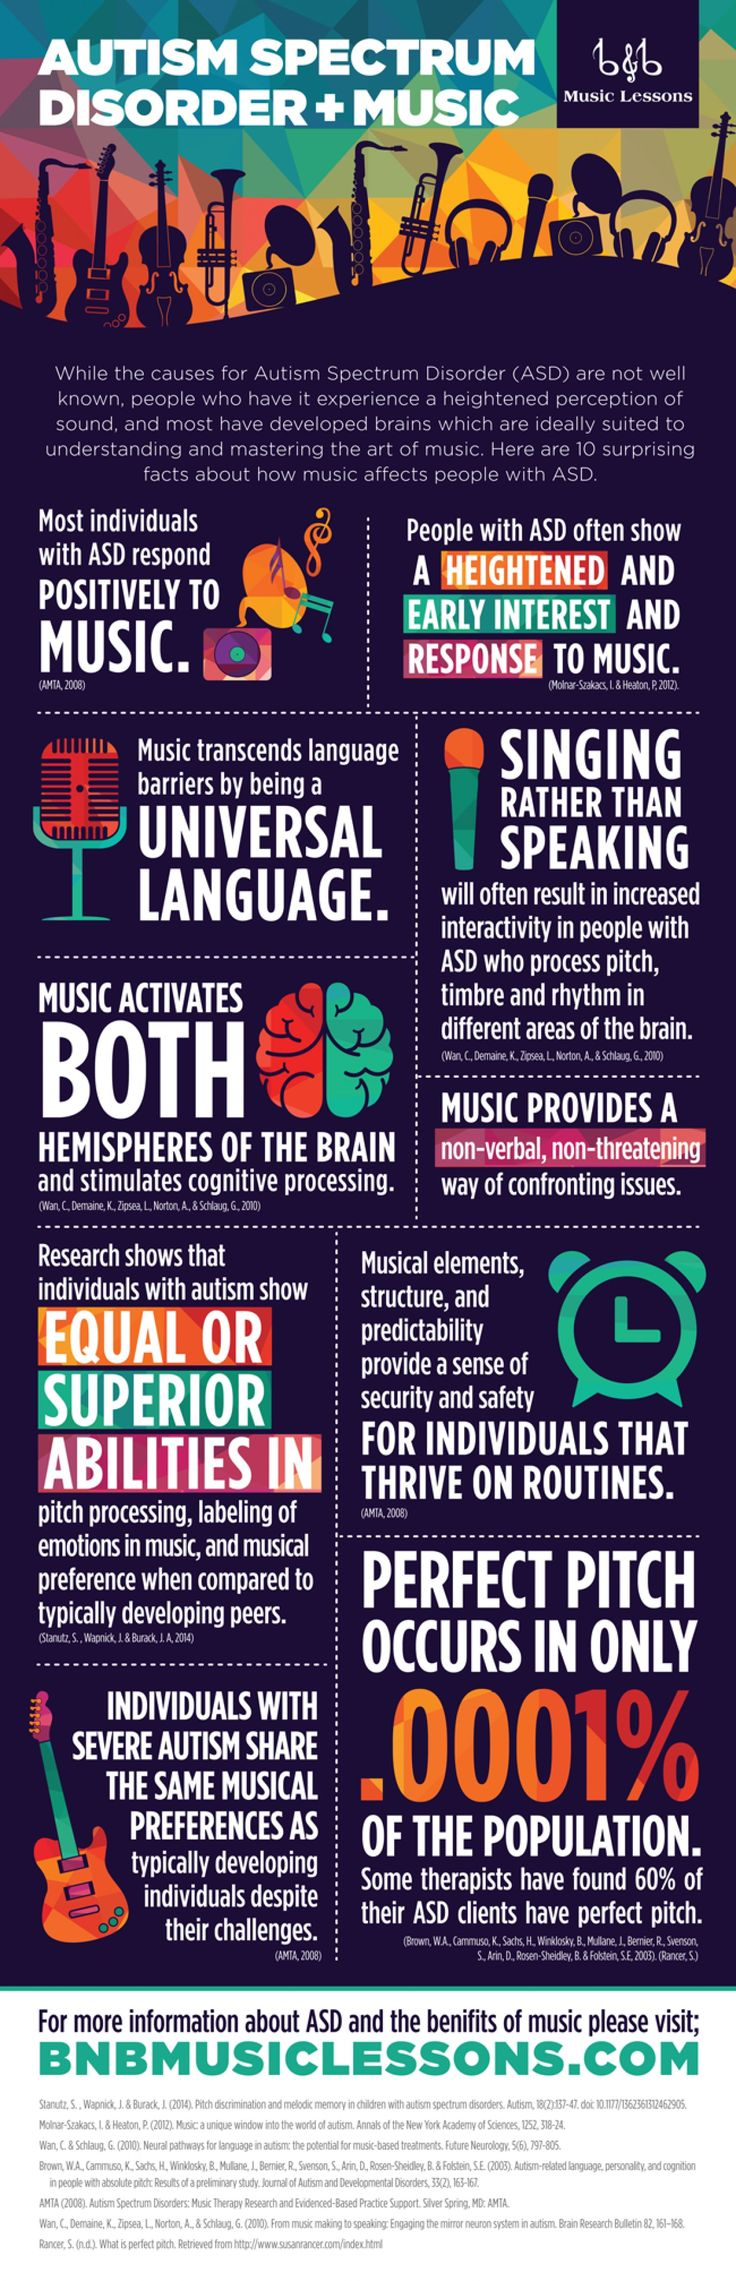 best autism facts ideas spectrum disorder autism spectrum disorder music it been shown how constructive music education is in all areas of cognitive development but it also proves to be